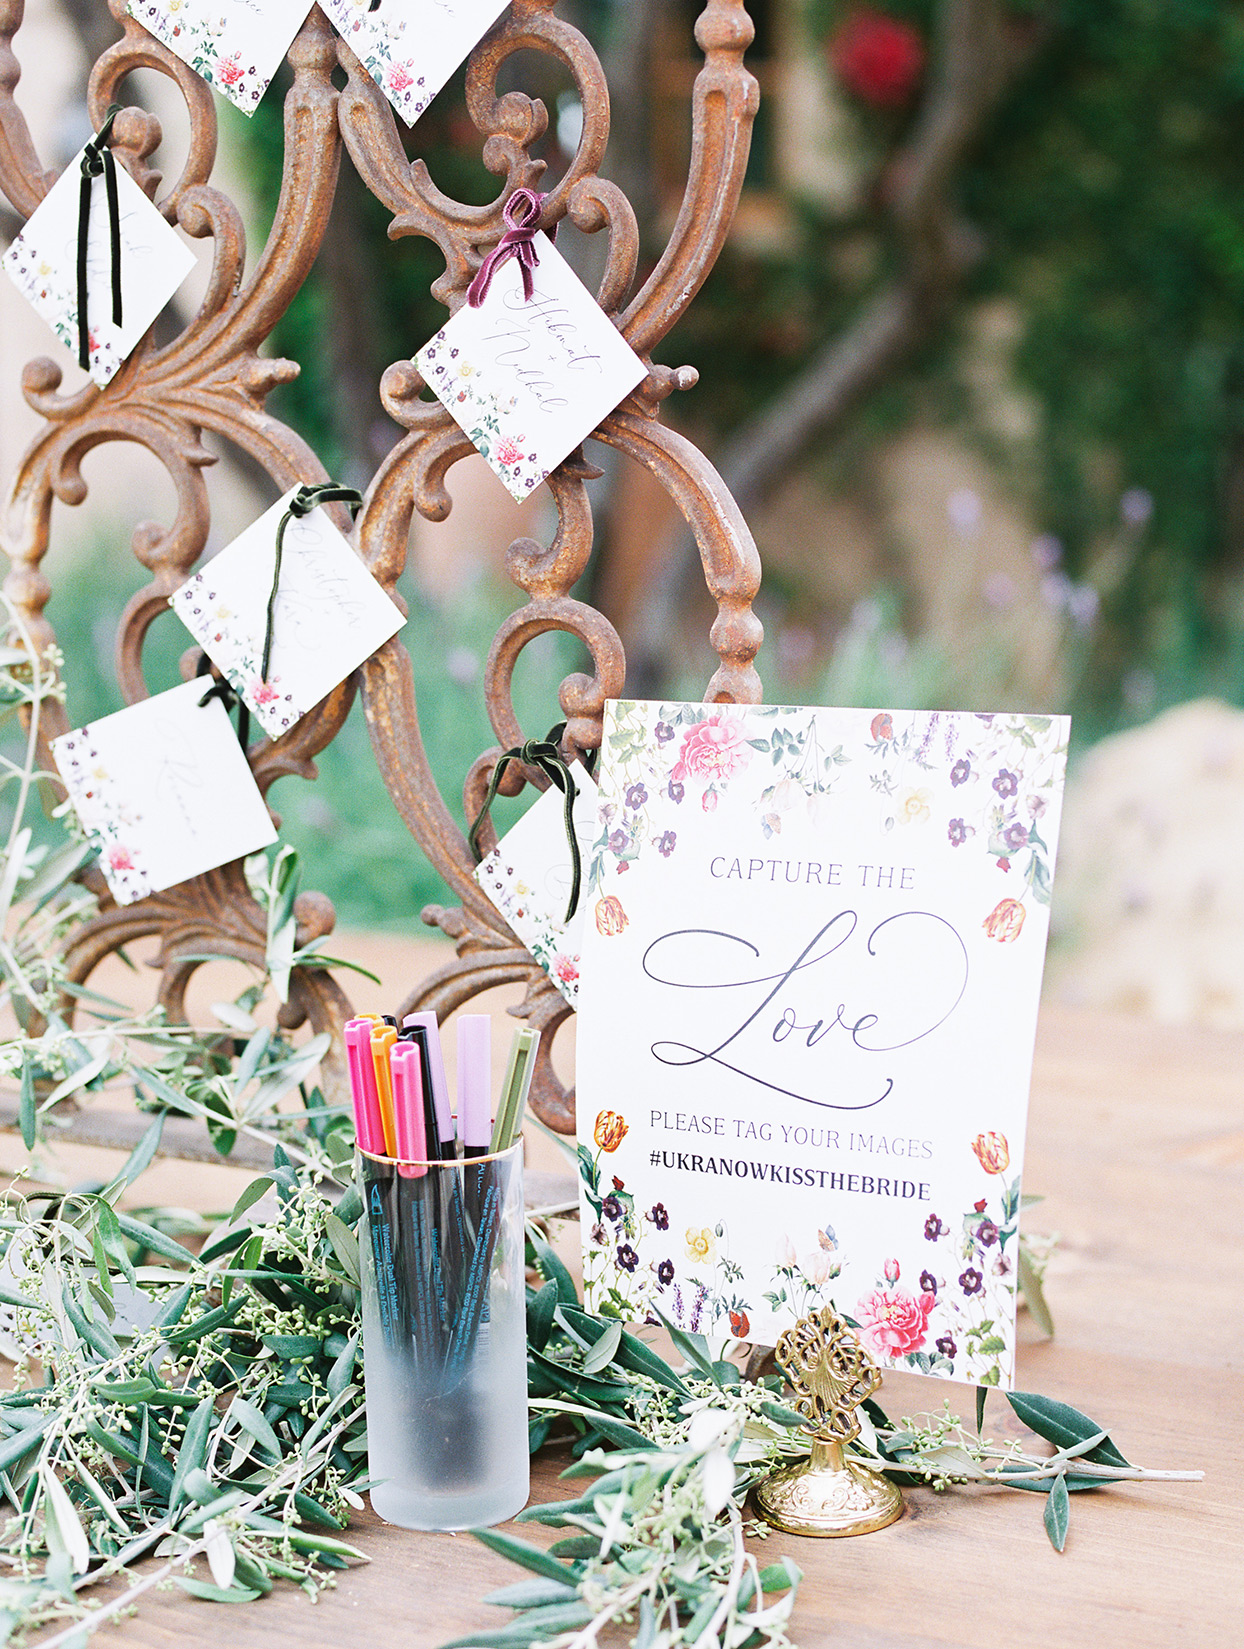 raina salih wedding guest book and social media sign